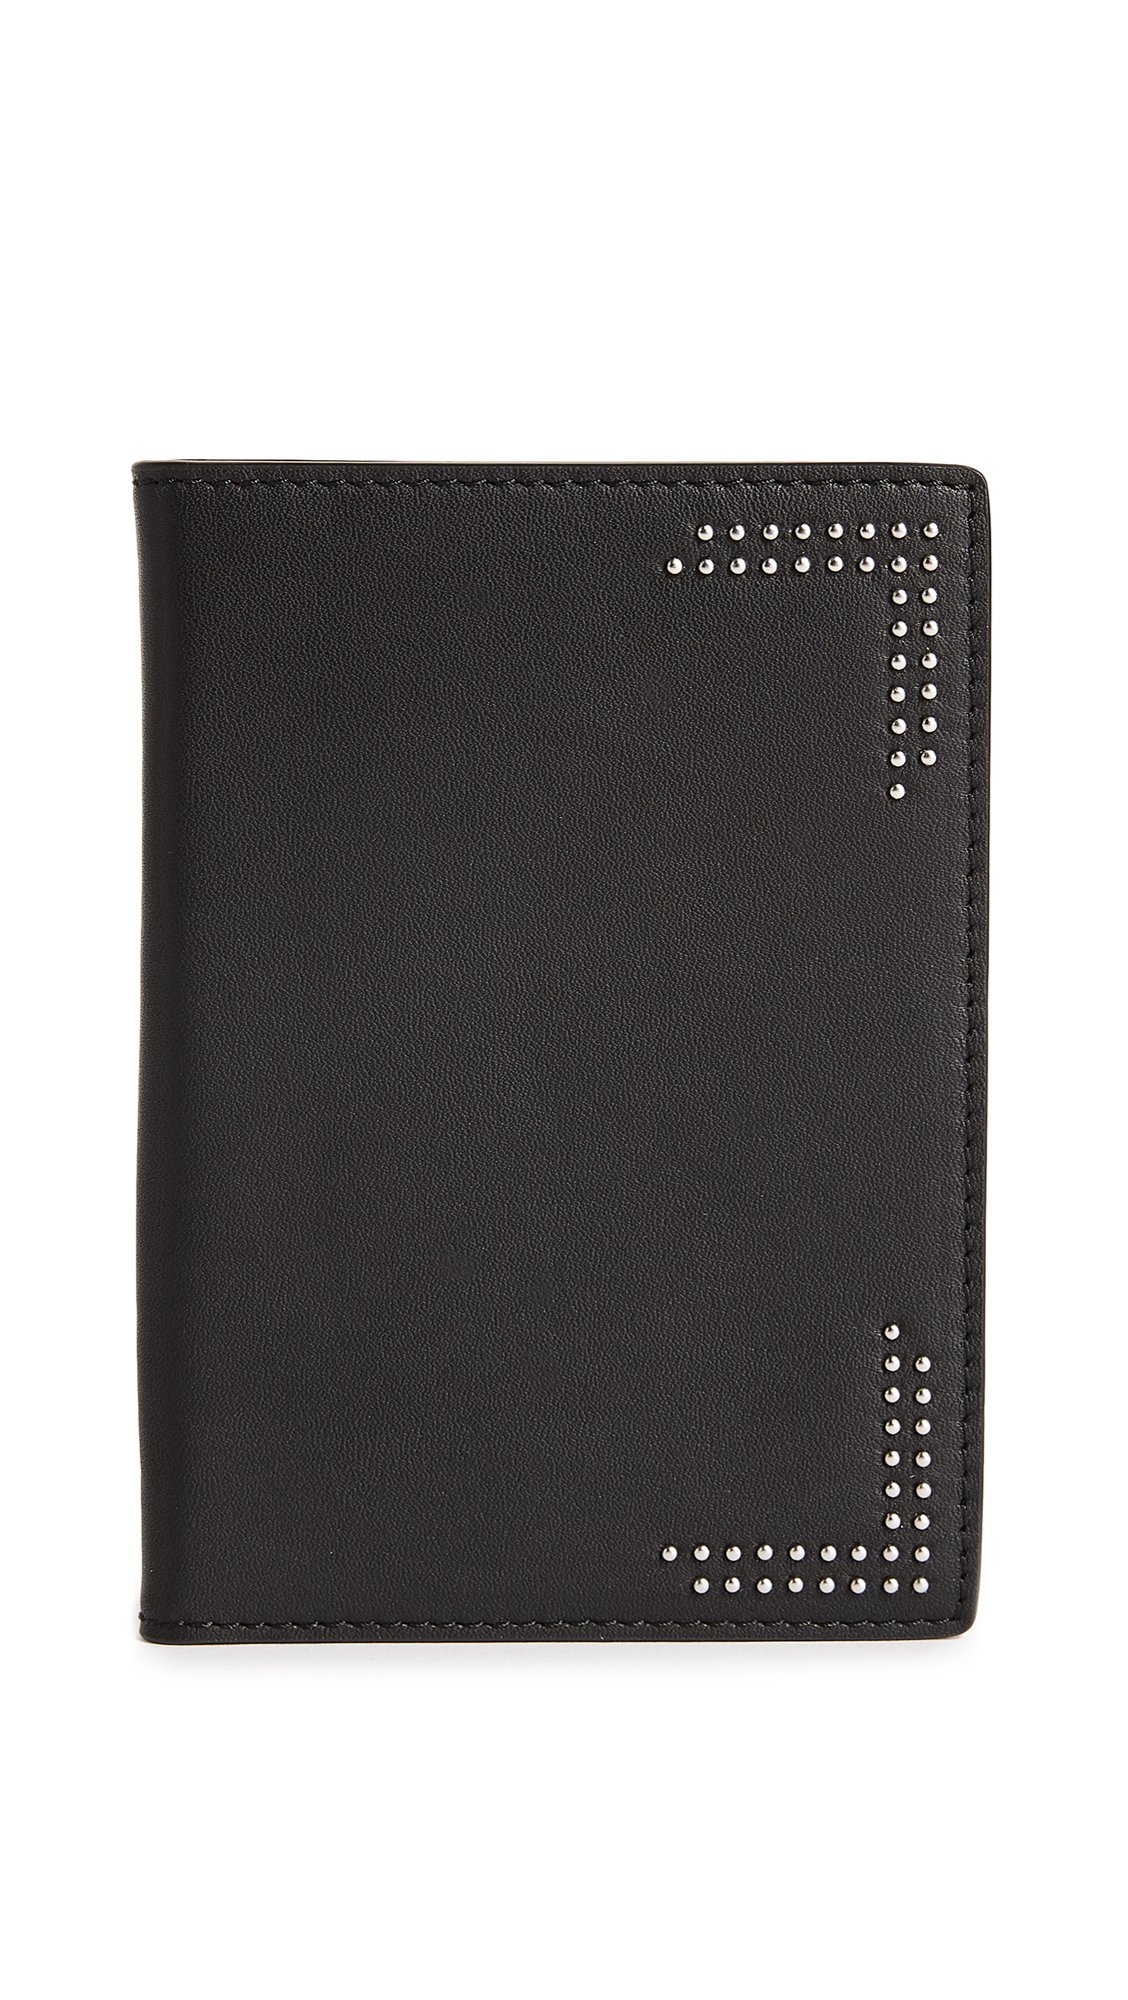 Mackage Women's Otis Passport Case, Black, One Size by Mackage